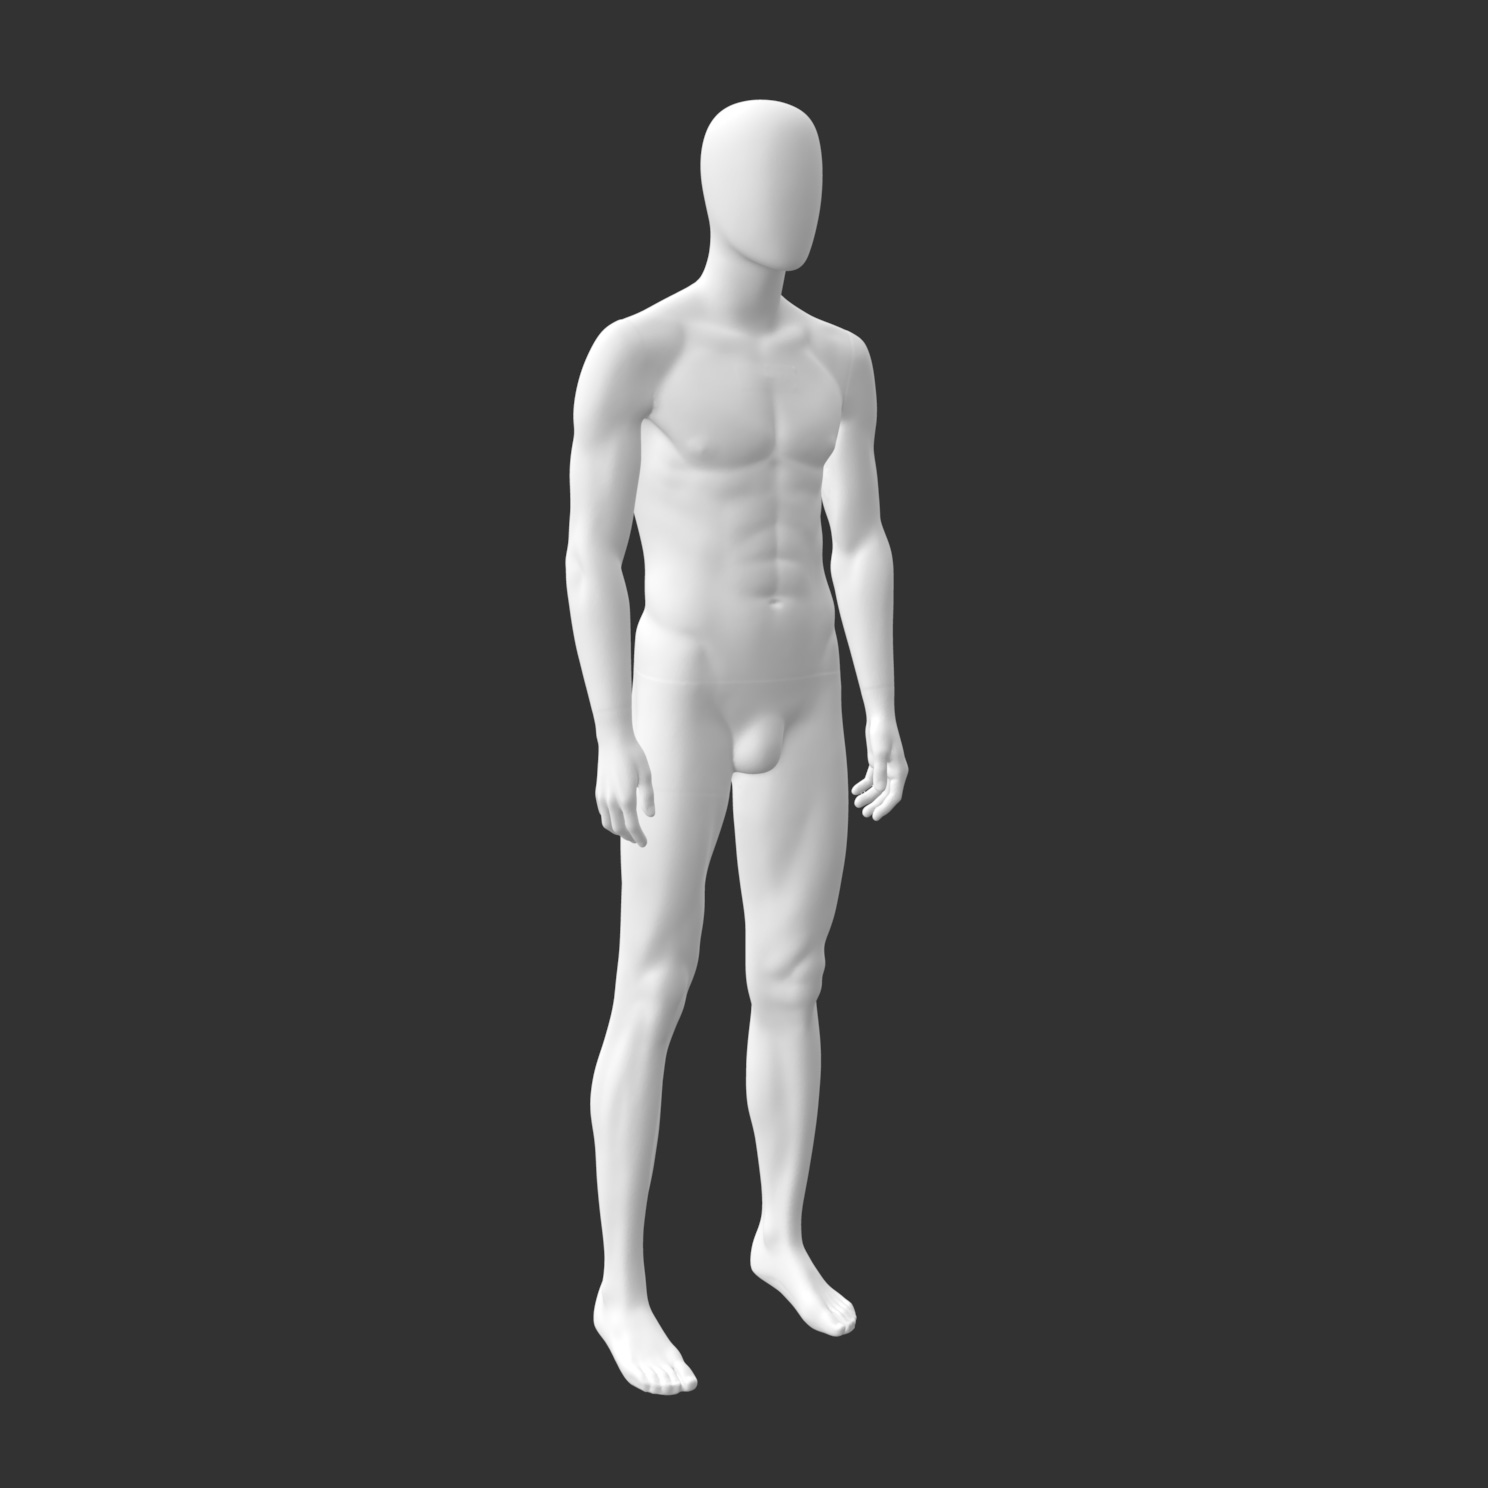 Male Sports Mannequin 3d Printing Model - 1